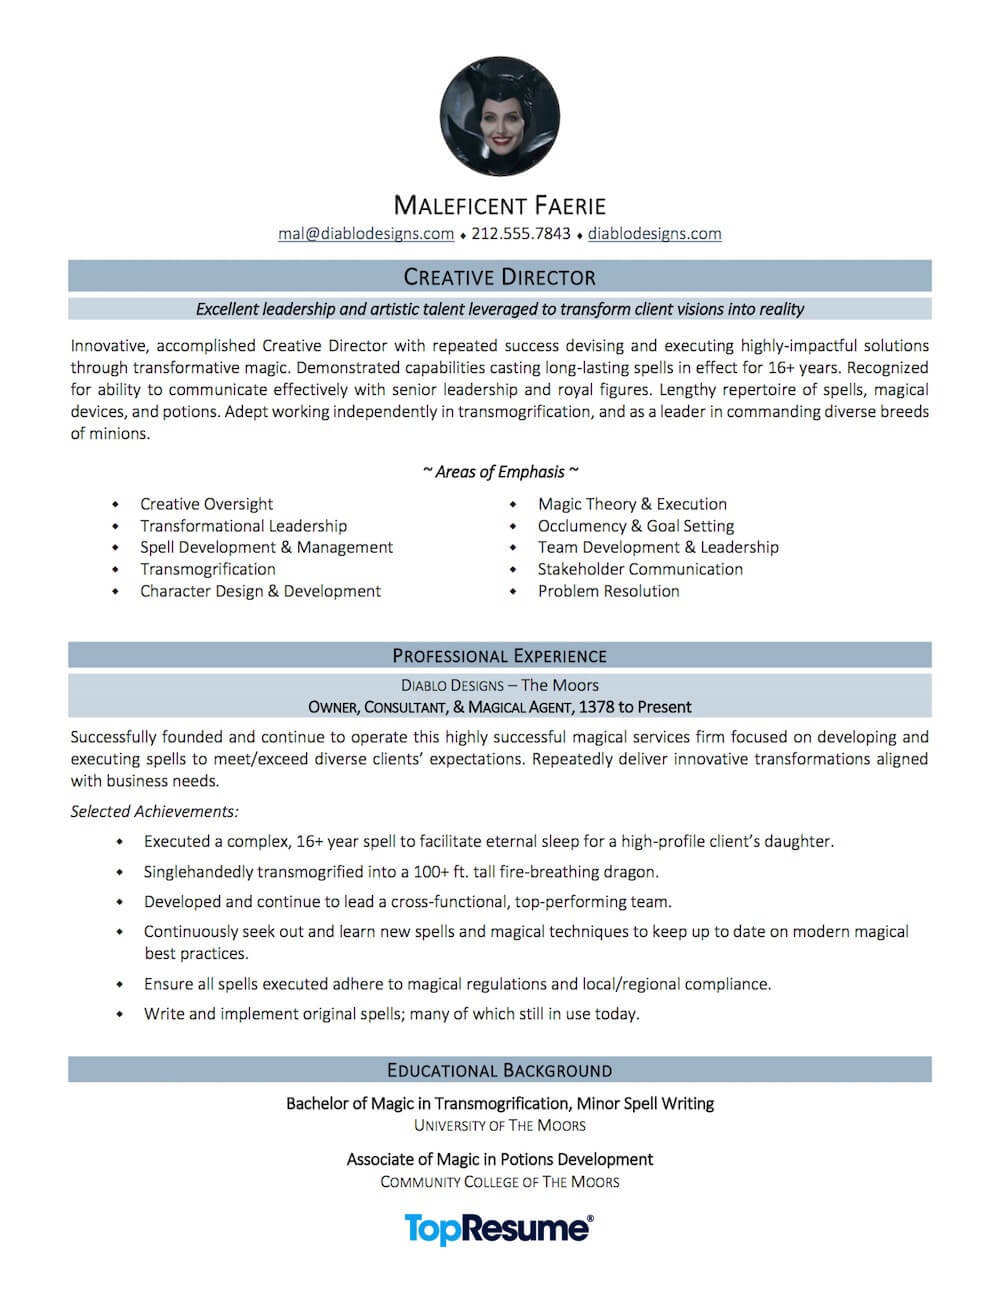 Career Change Resume Sample Maleficent